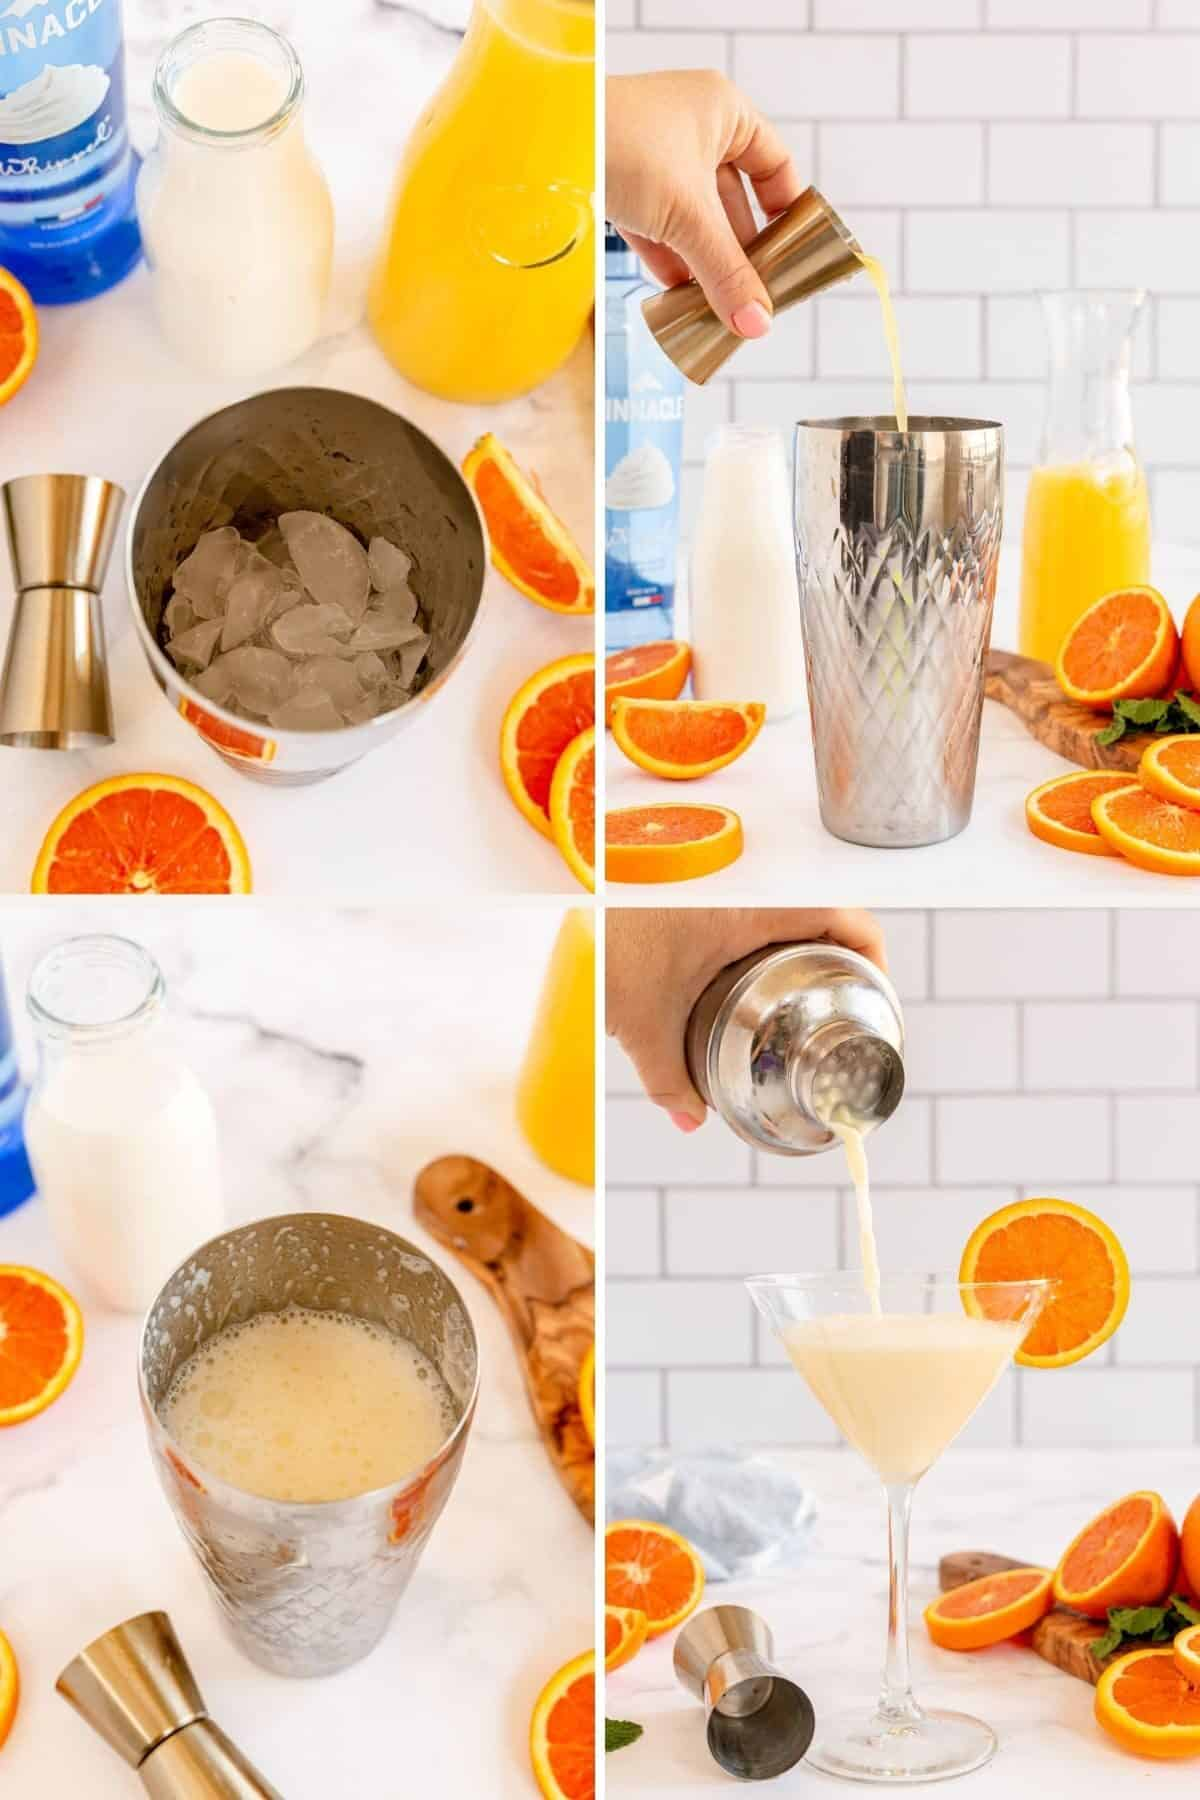 4 step by step shots showing the steps to make an orange martini